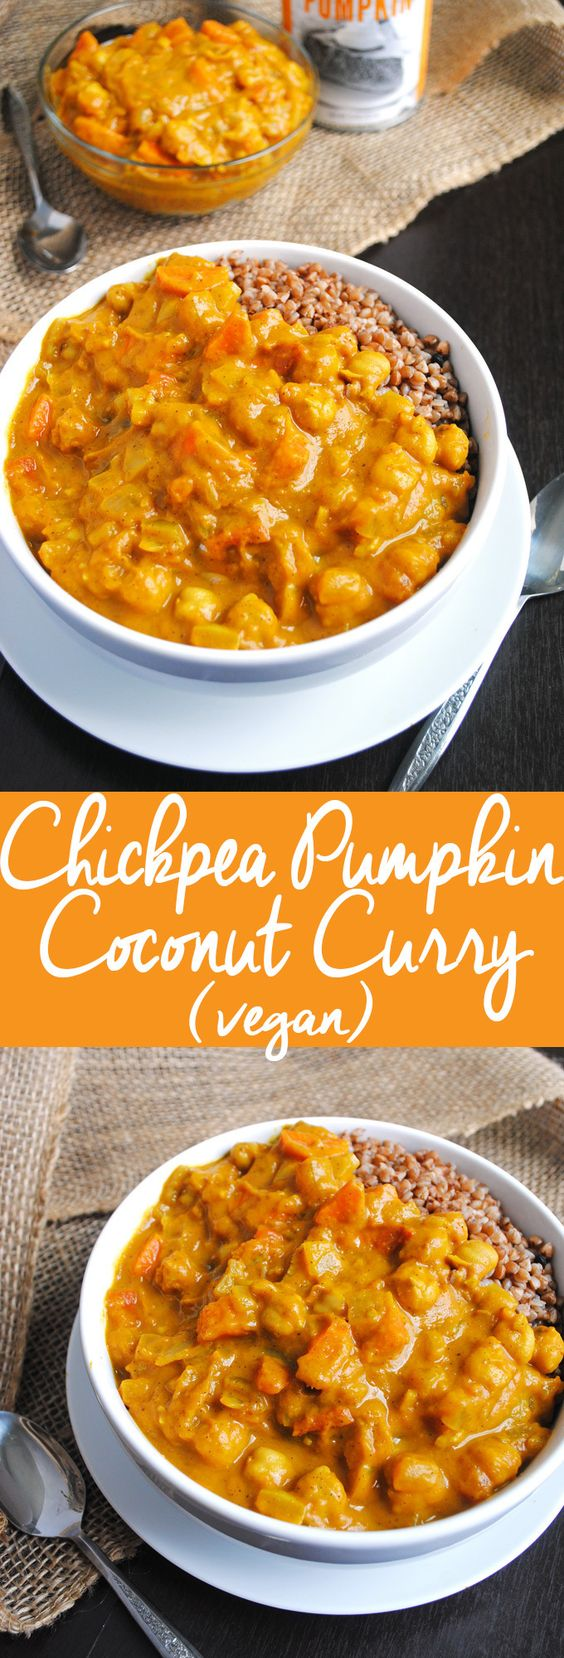 This easy Chickpea Pumpkin Coconut Curry is a delicious, comforting soup for fall and winter and will warm you up from the inside out!